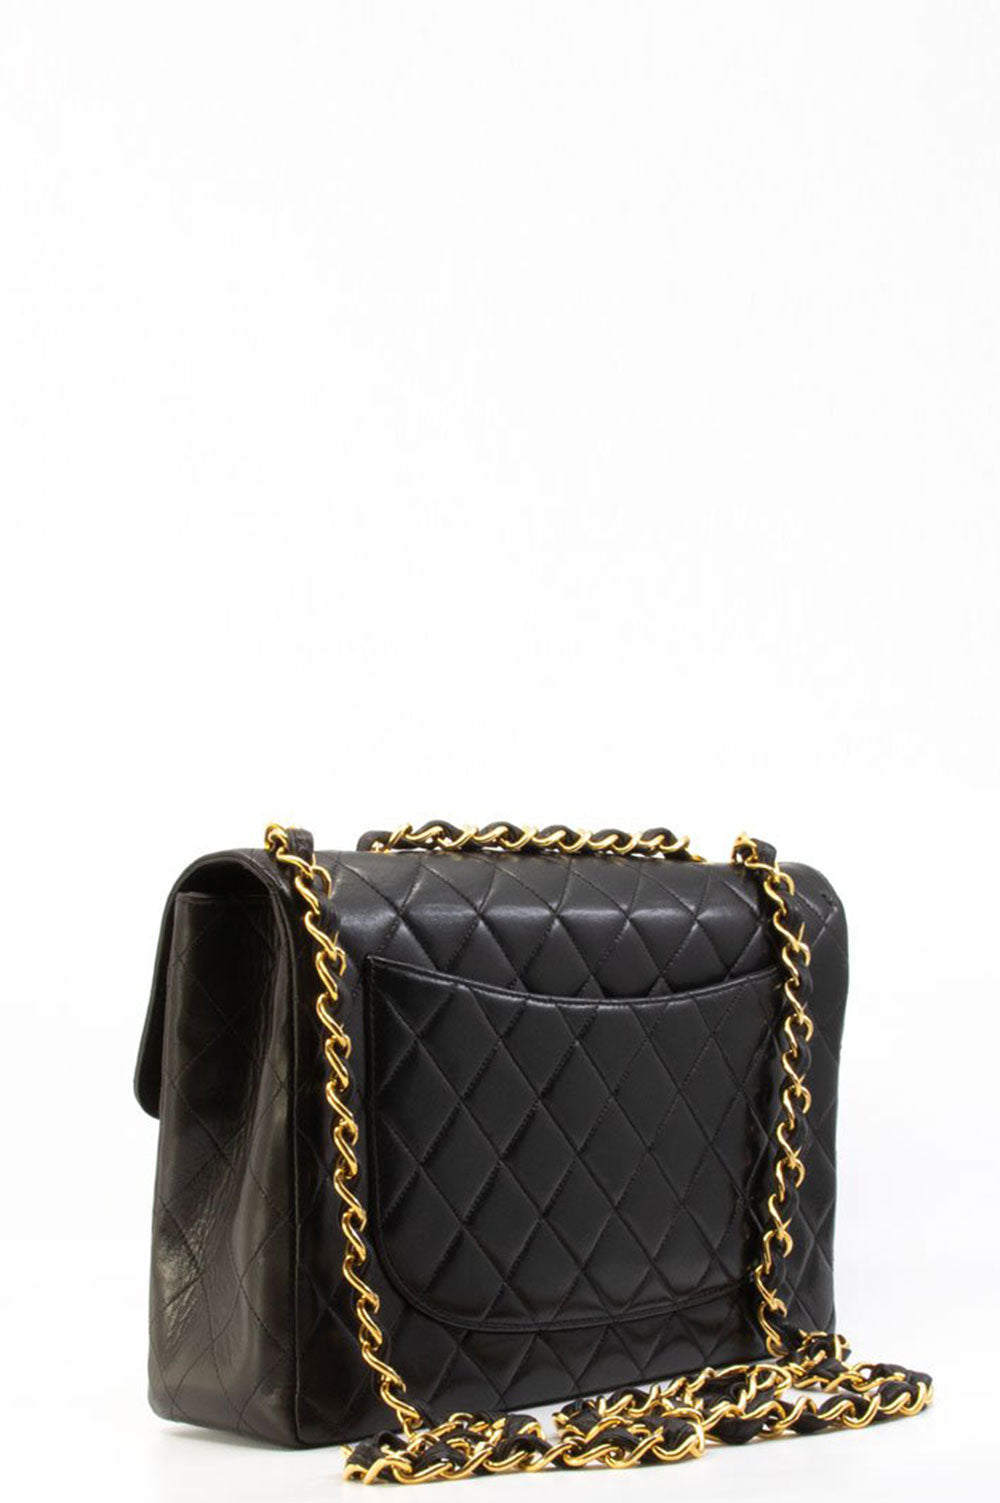 Chanel Vintage Flap Bag Jumbo